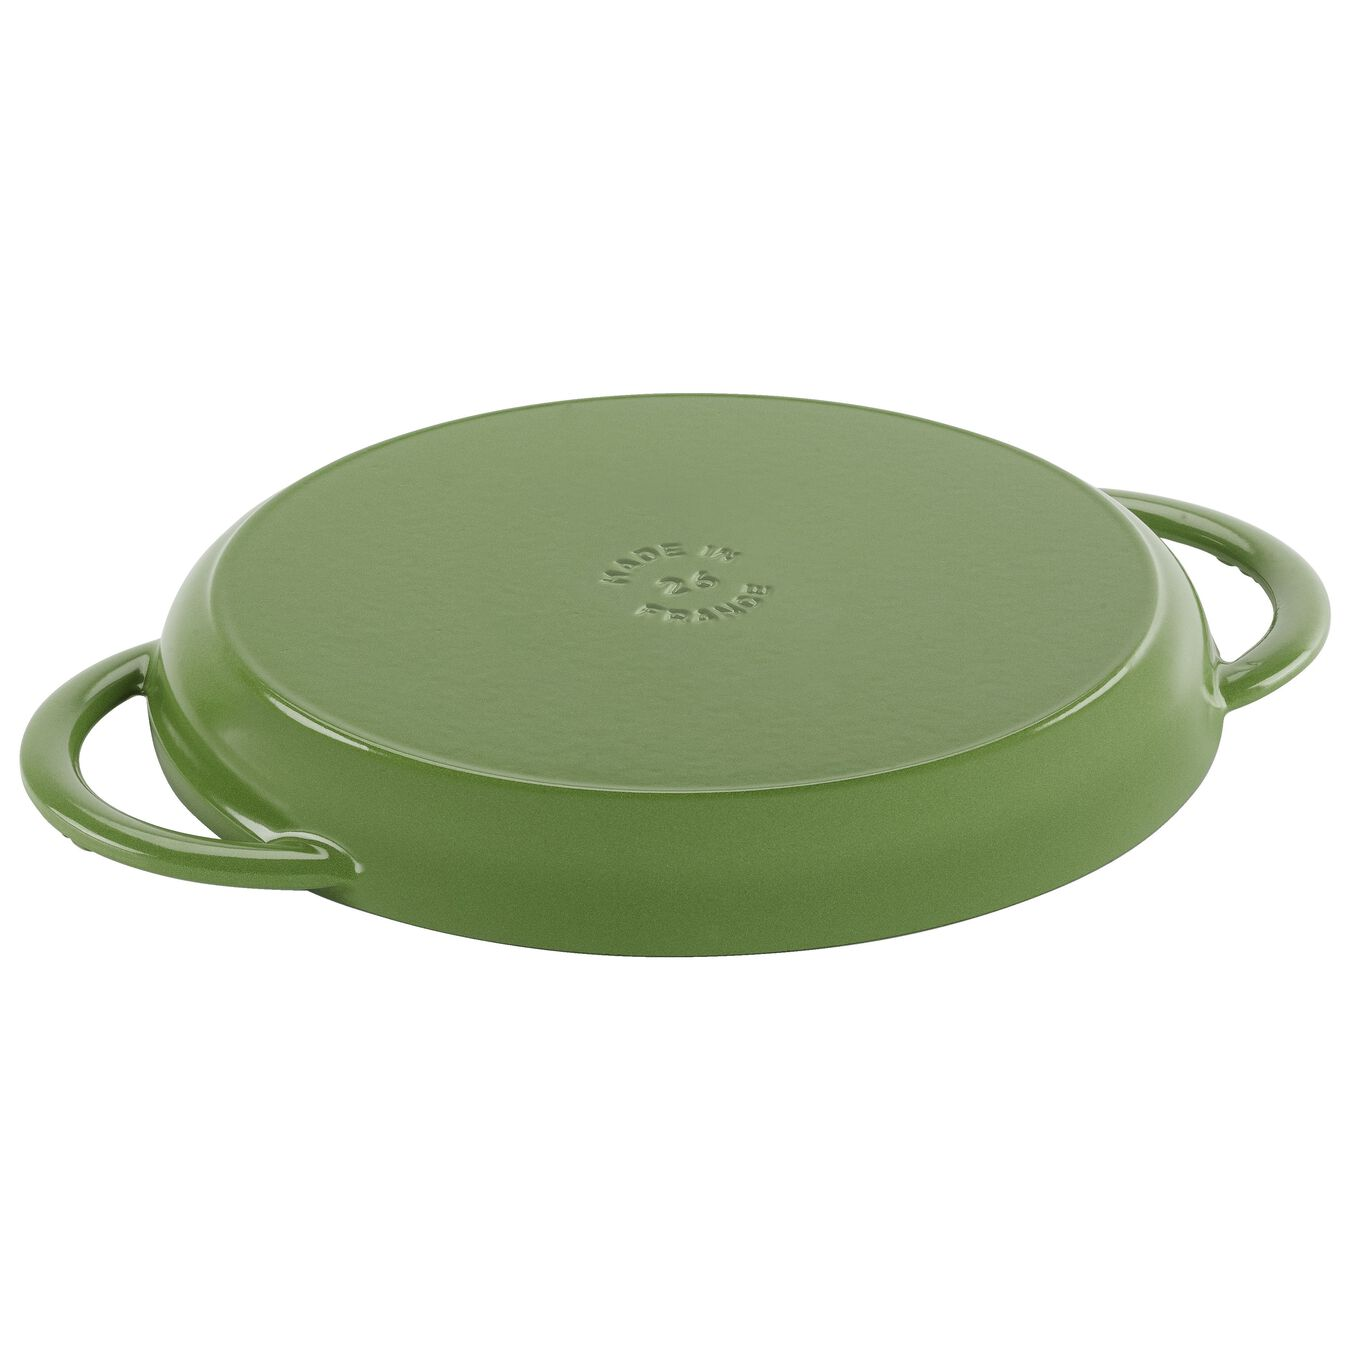 round, Grill pan, Lime Green,,large 2